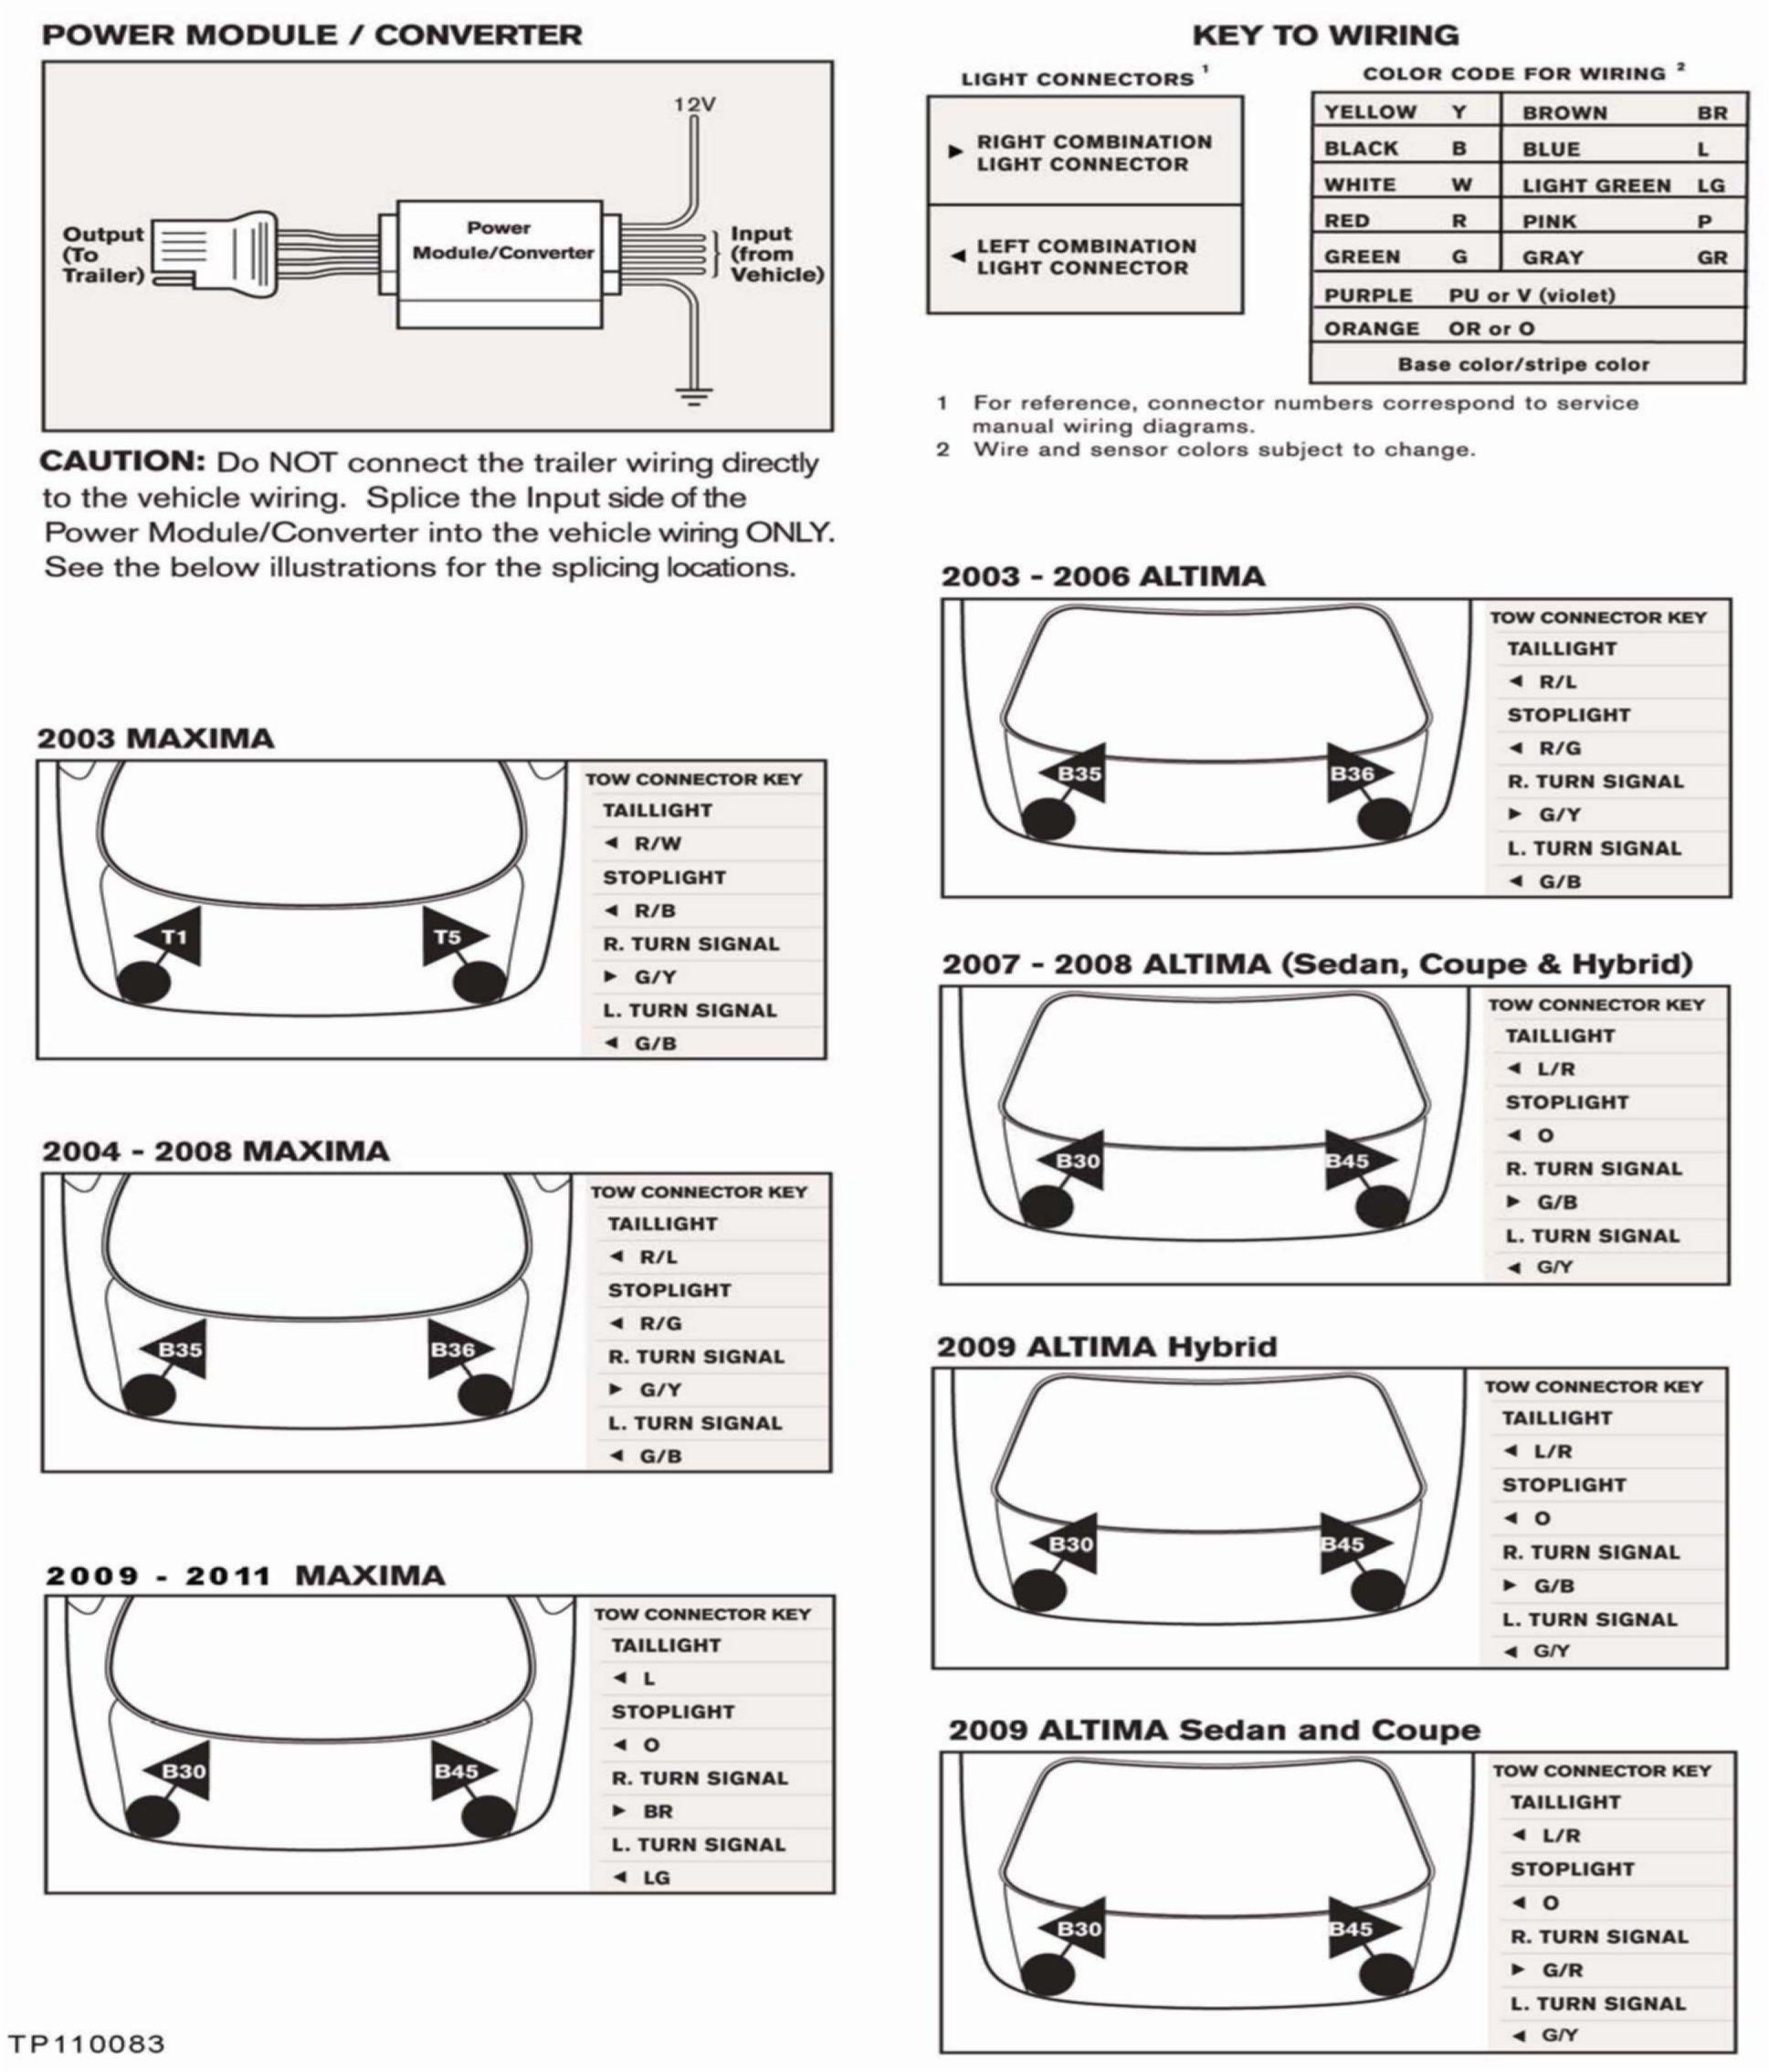 hight resolution of the wiring diagrams contained in this bulletin are for nissan vehicles that have trailer towing capability see the owners manual but do not have a genuine